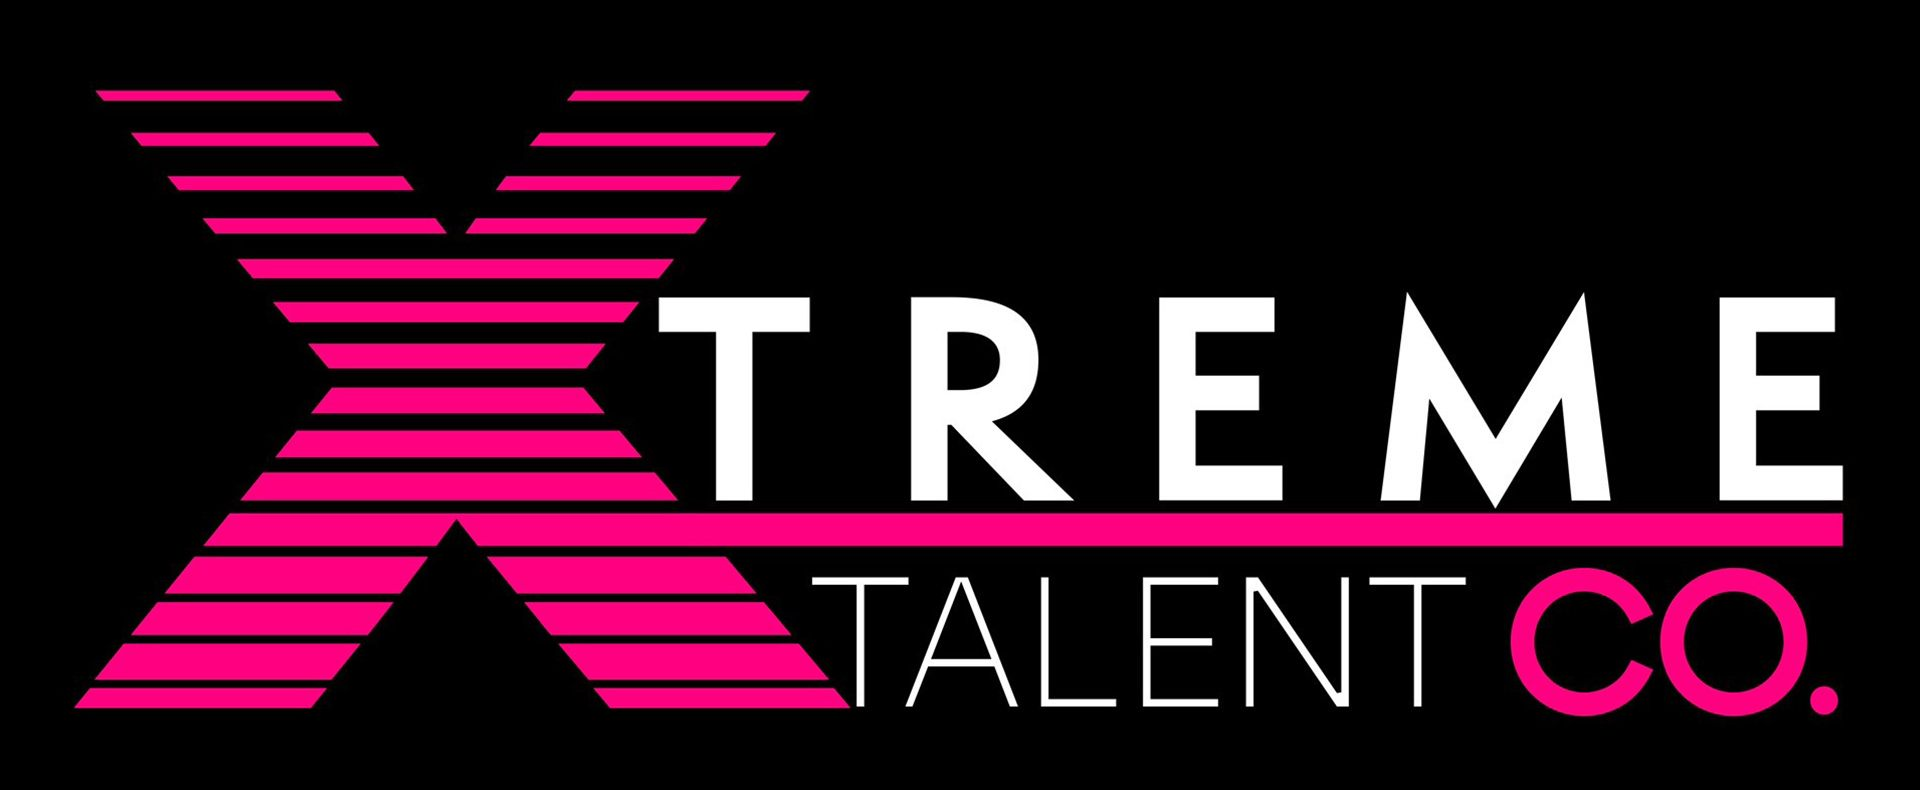 Xtreme Talent Co – An Xtreme Year Let's Party and Cheer!